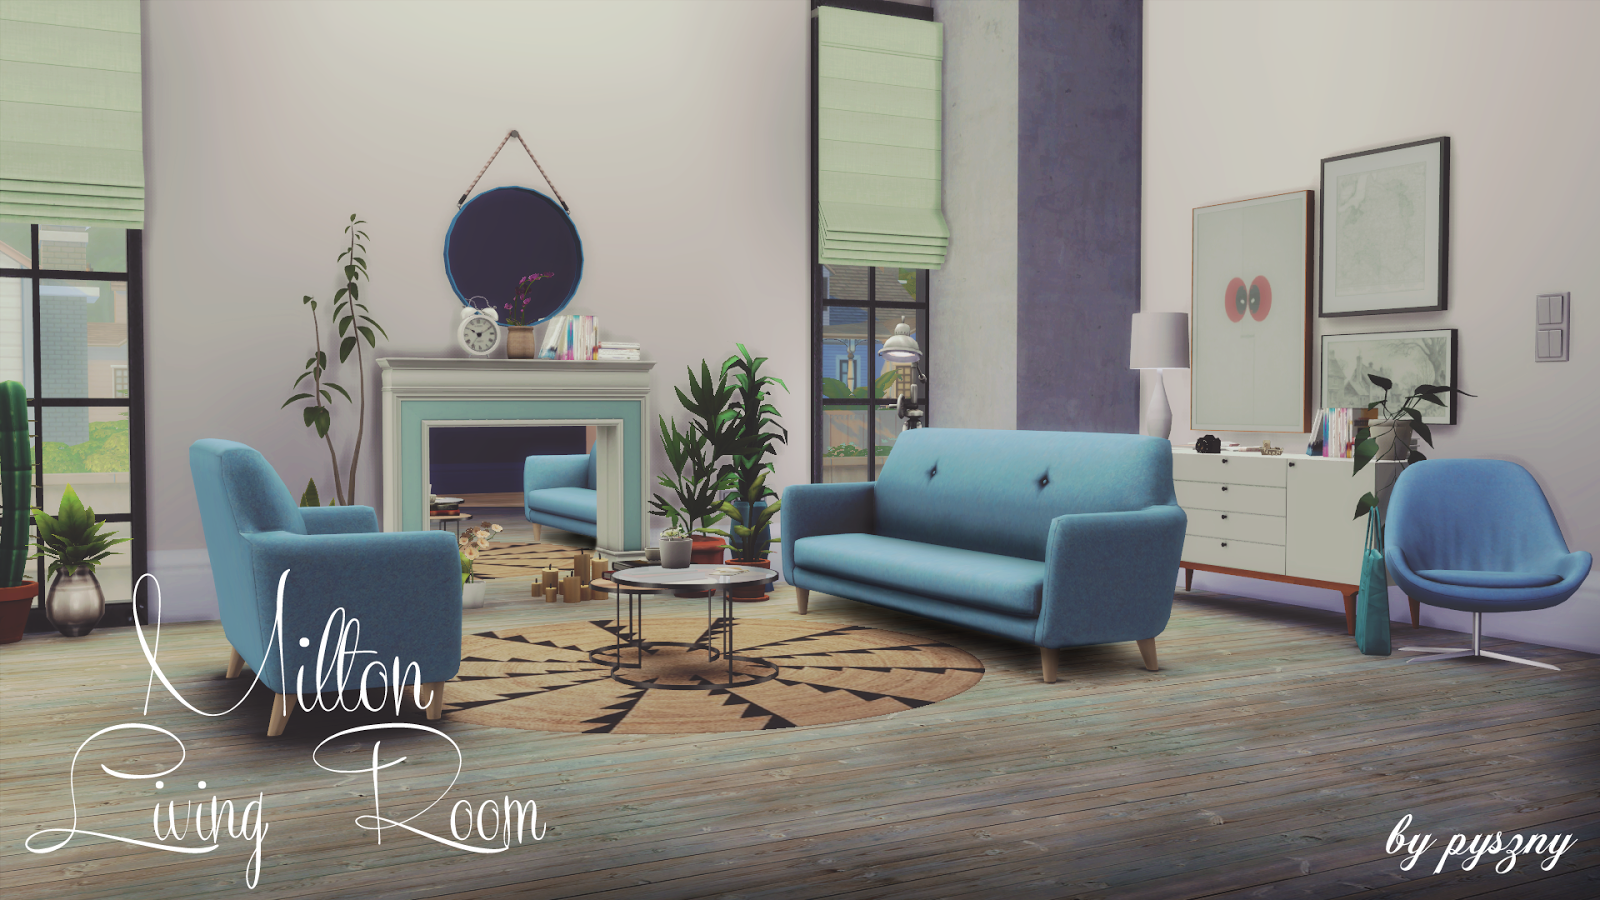 My Sims 4 Blog Milton Living Room Set By Pyszny. Kitchen Storage Containers Walmart. Organic Kitchen Nyc. Ashleys Country Kitchen. Organize Kitchen Utensils. Red Kitchen Paint Colors. Carvers Country Kitchen. Kitchen And Bathroom Accessories. Red Kitchen Accessories Ideas